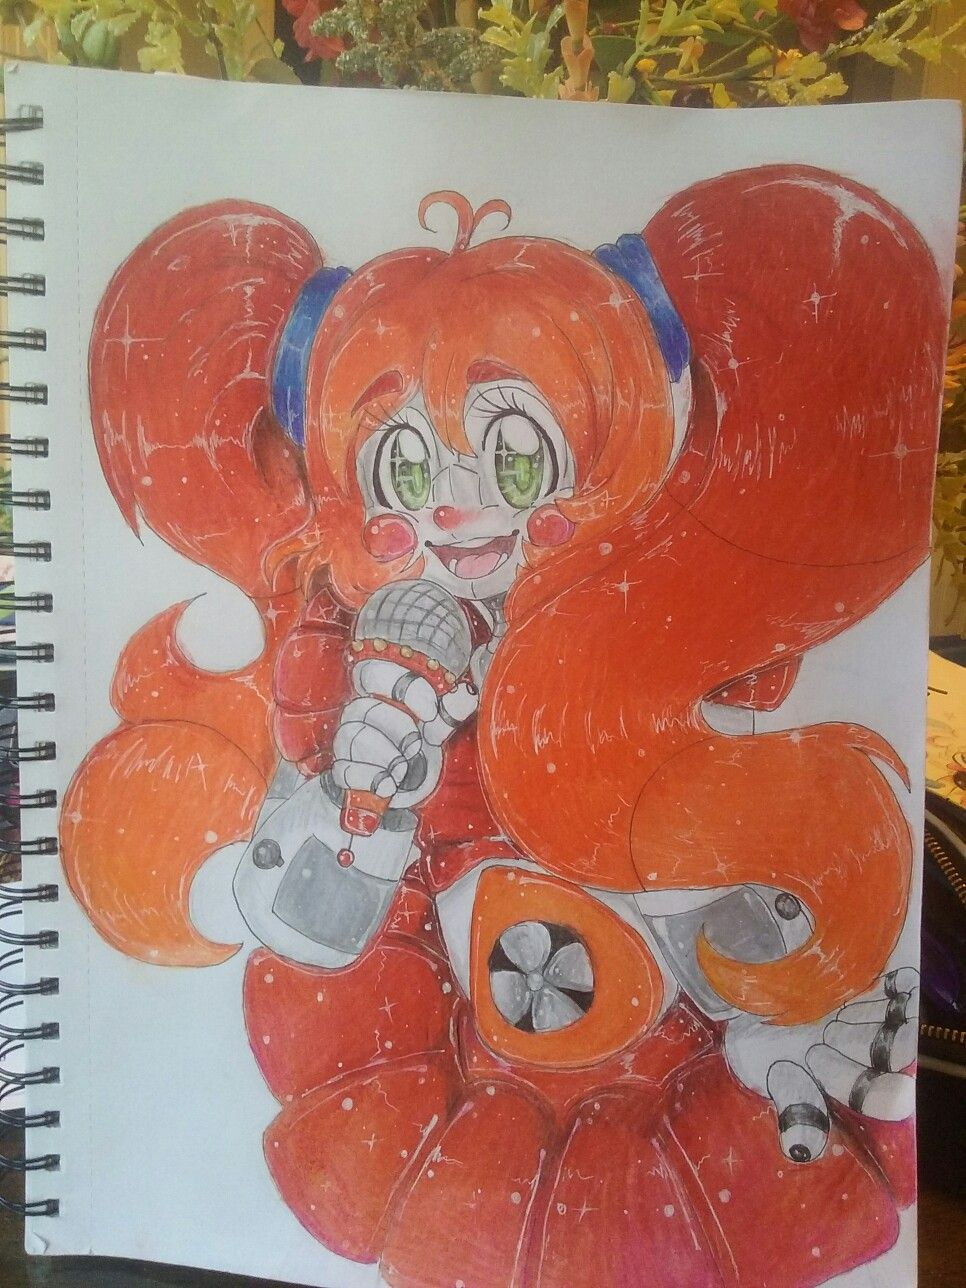 WIP)My drawing of Circus Baby from Fnaf Sister Location